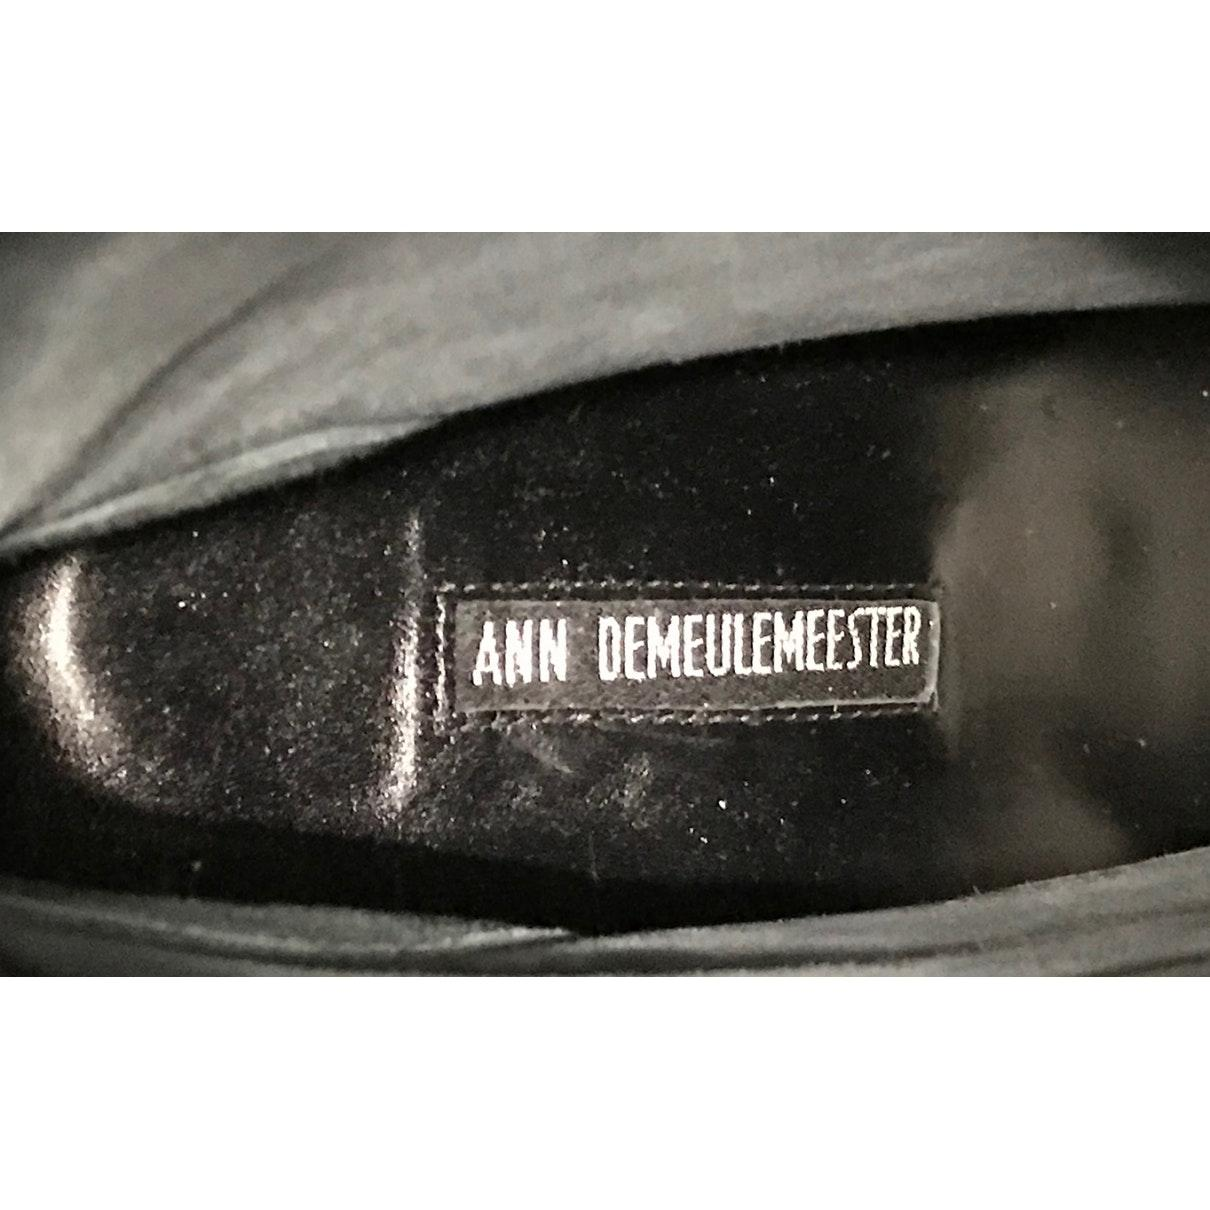 Ann Demeulemeester Leather Black Pony-style Calfskin Boots